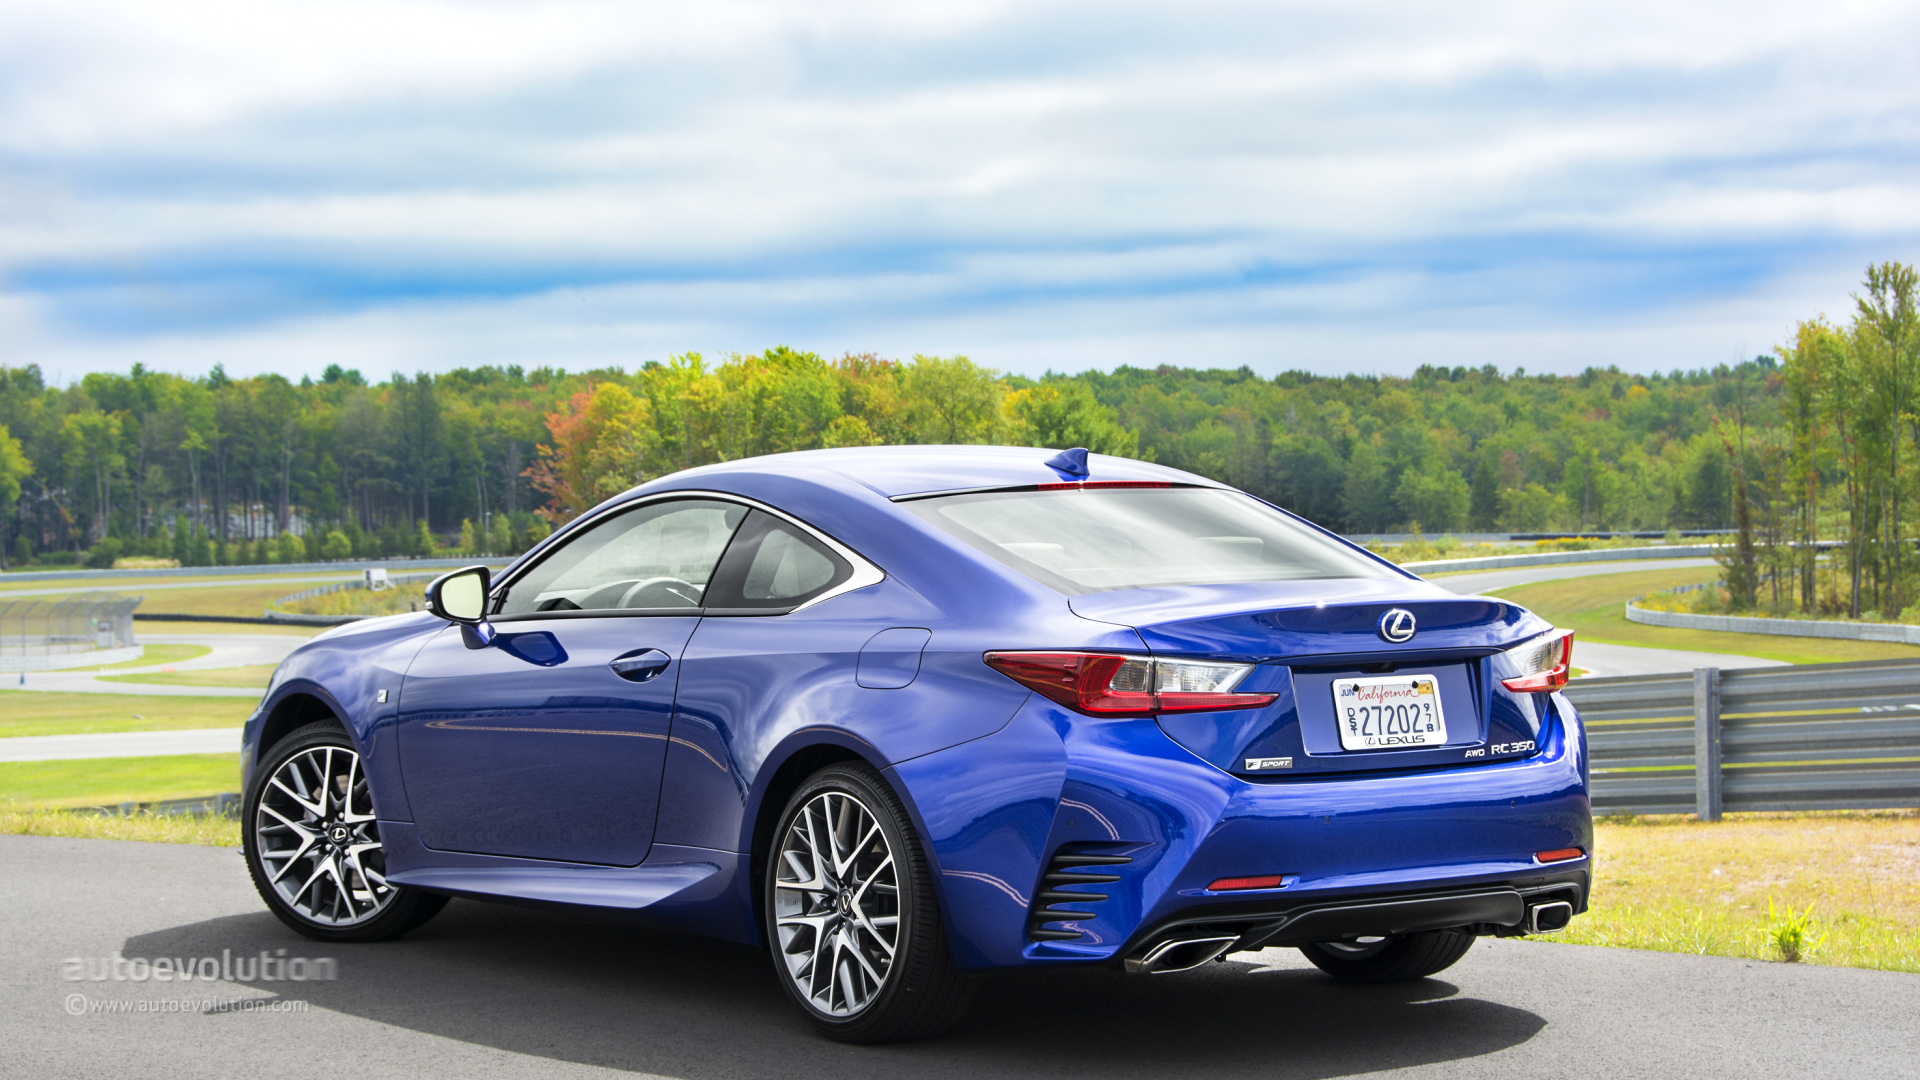 2015 LEXUS RC, RC F Review - autoevolution